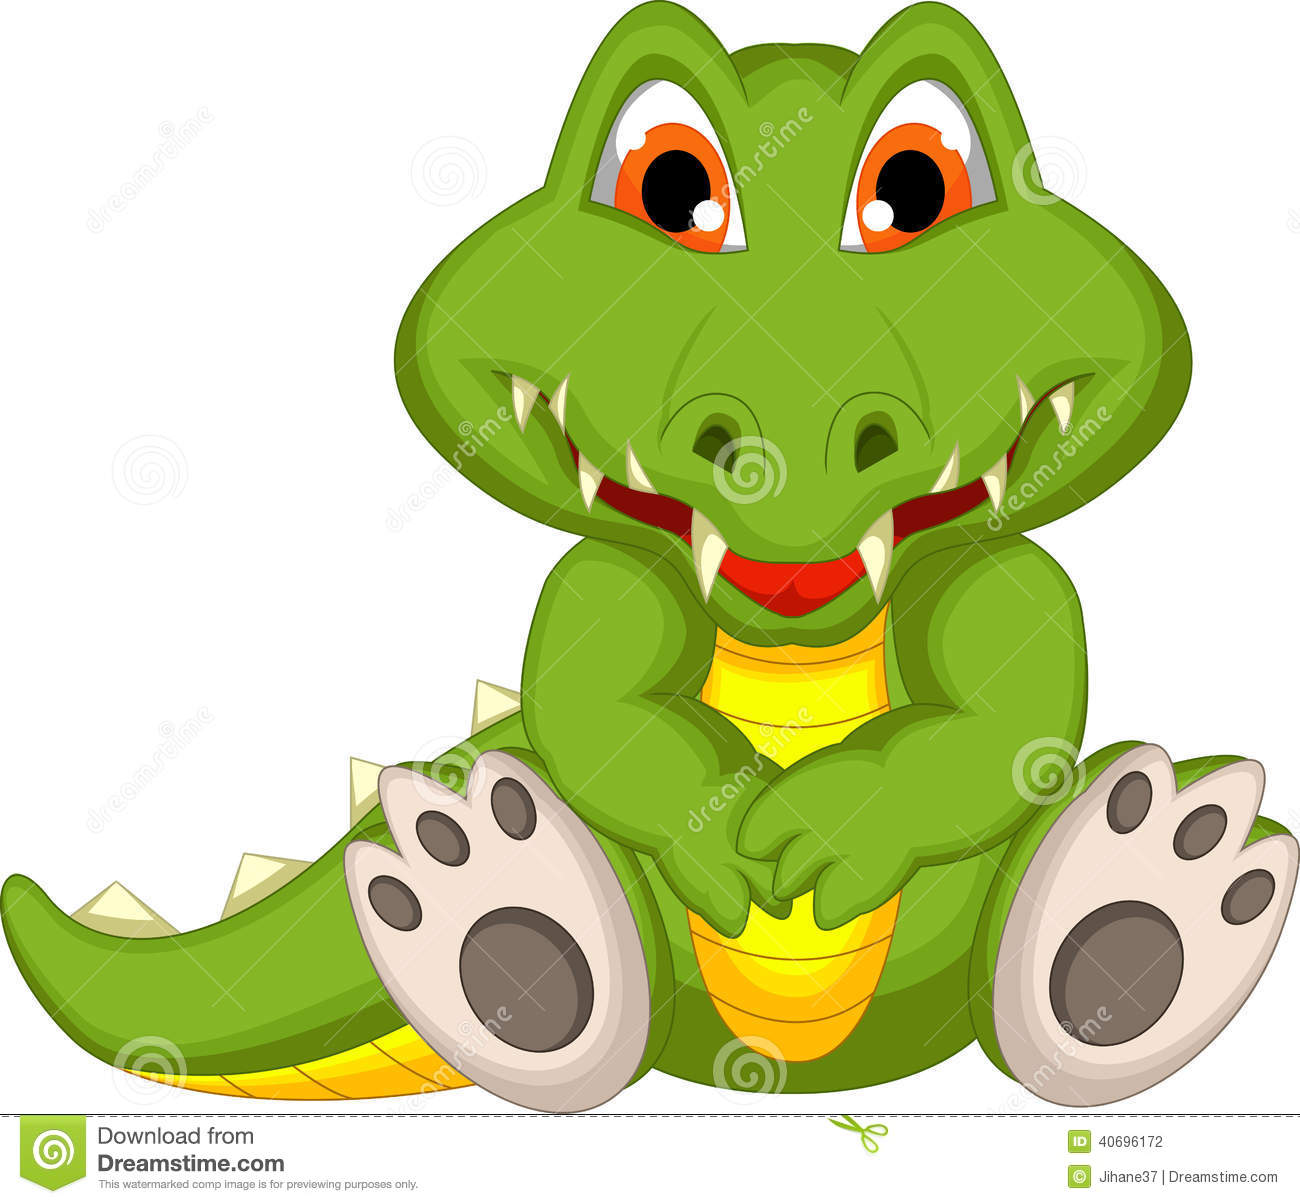 alligator buddhist dating site Are you interested in meeting jamaican buddhist singles if you are, then join our dating site registration is simple and membership is totally free just create your own personal 'friendship' ad and start meeting singles in jamaica.